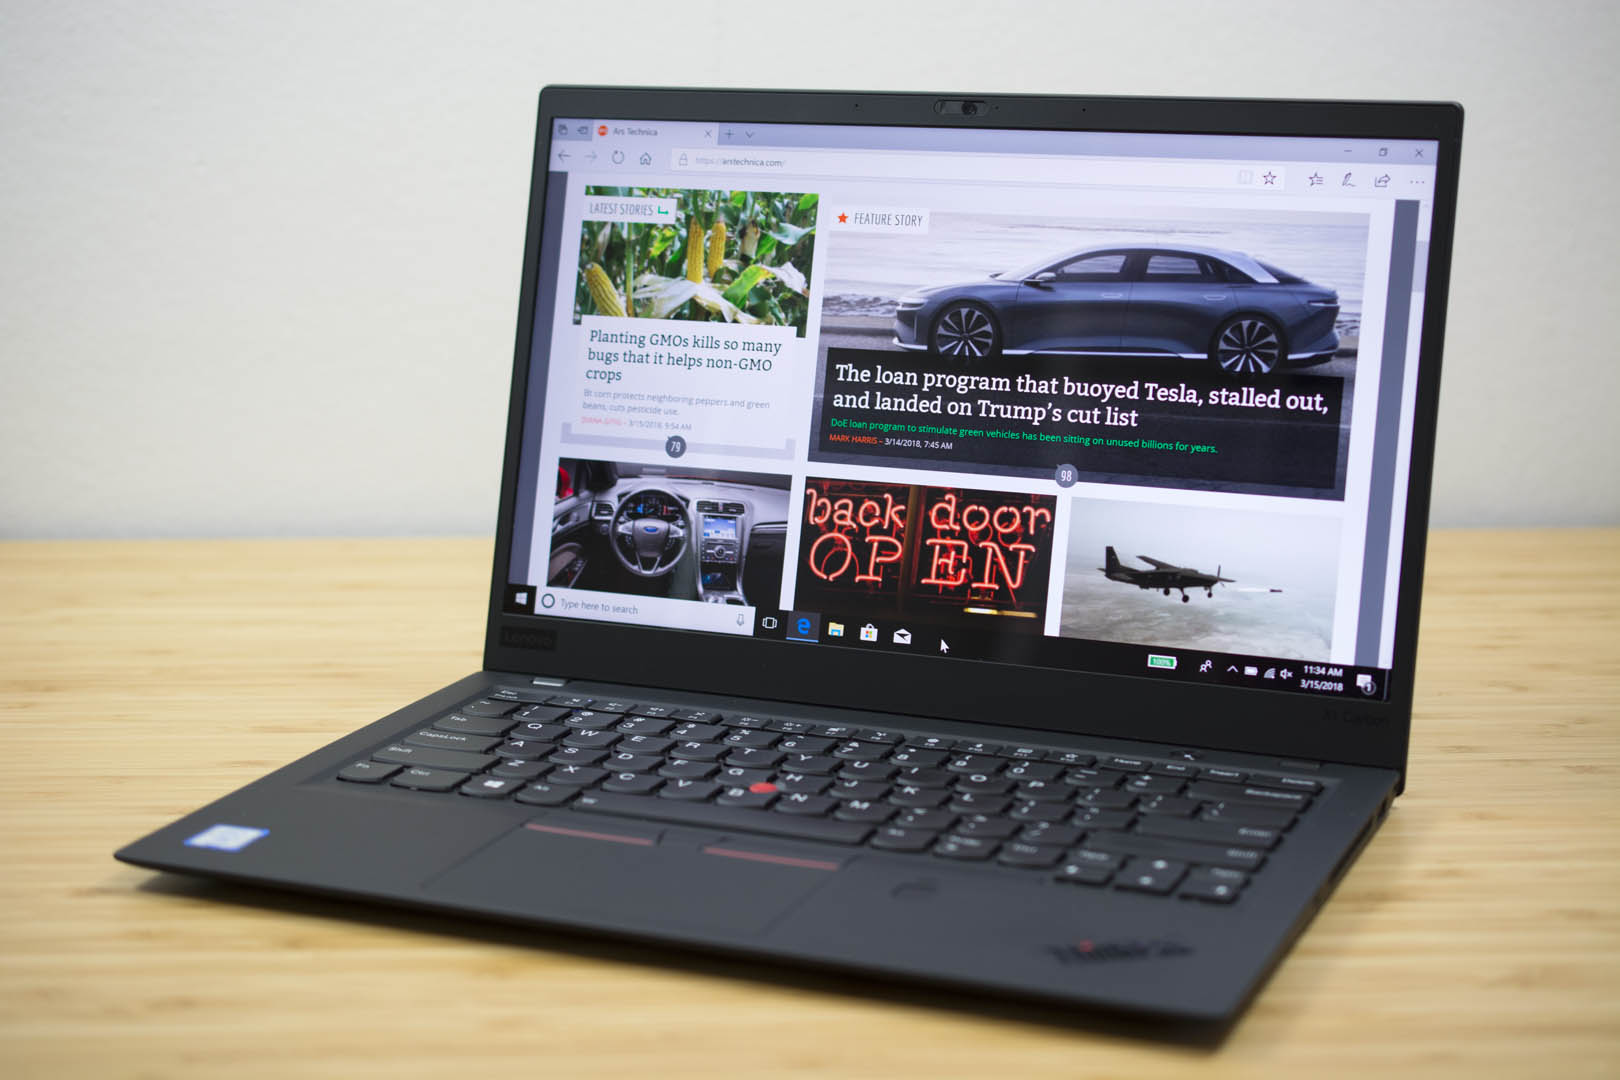 ThinkPad X1 Carbon 2018 review: The only laptop in a